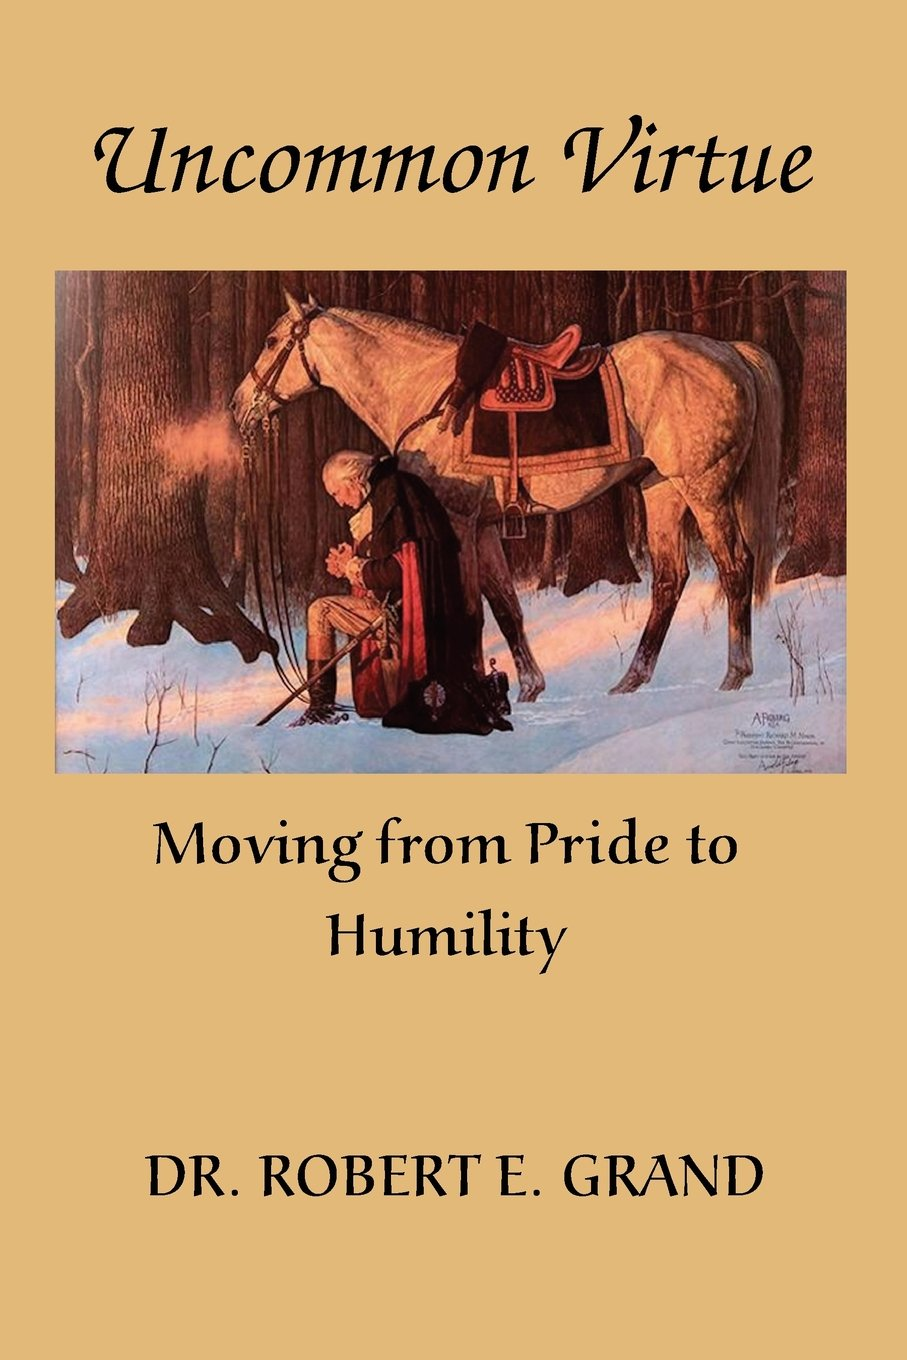 Download Uncommon Virtue: Moving from Pride to Humility (The Trilogy of Healing) (Volume 2) PDF